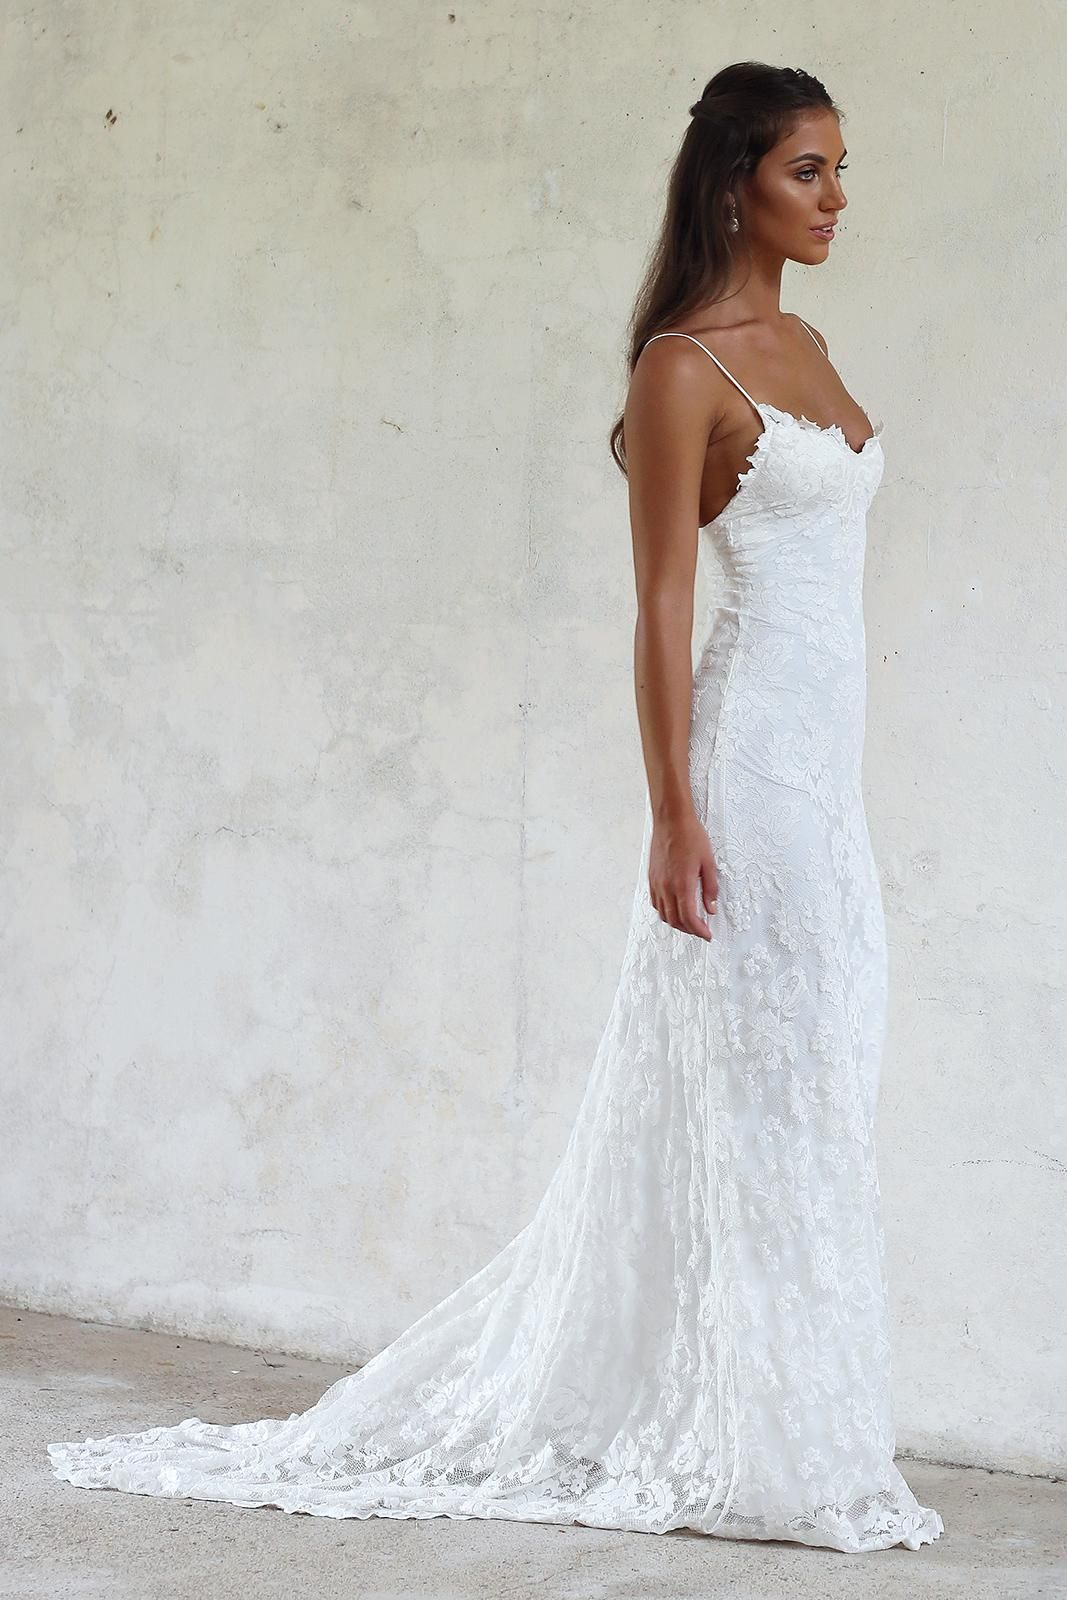 405d71d35a7 Designed for the minimalist bride who wants to make a statement in the most  subtle